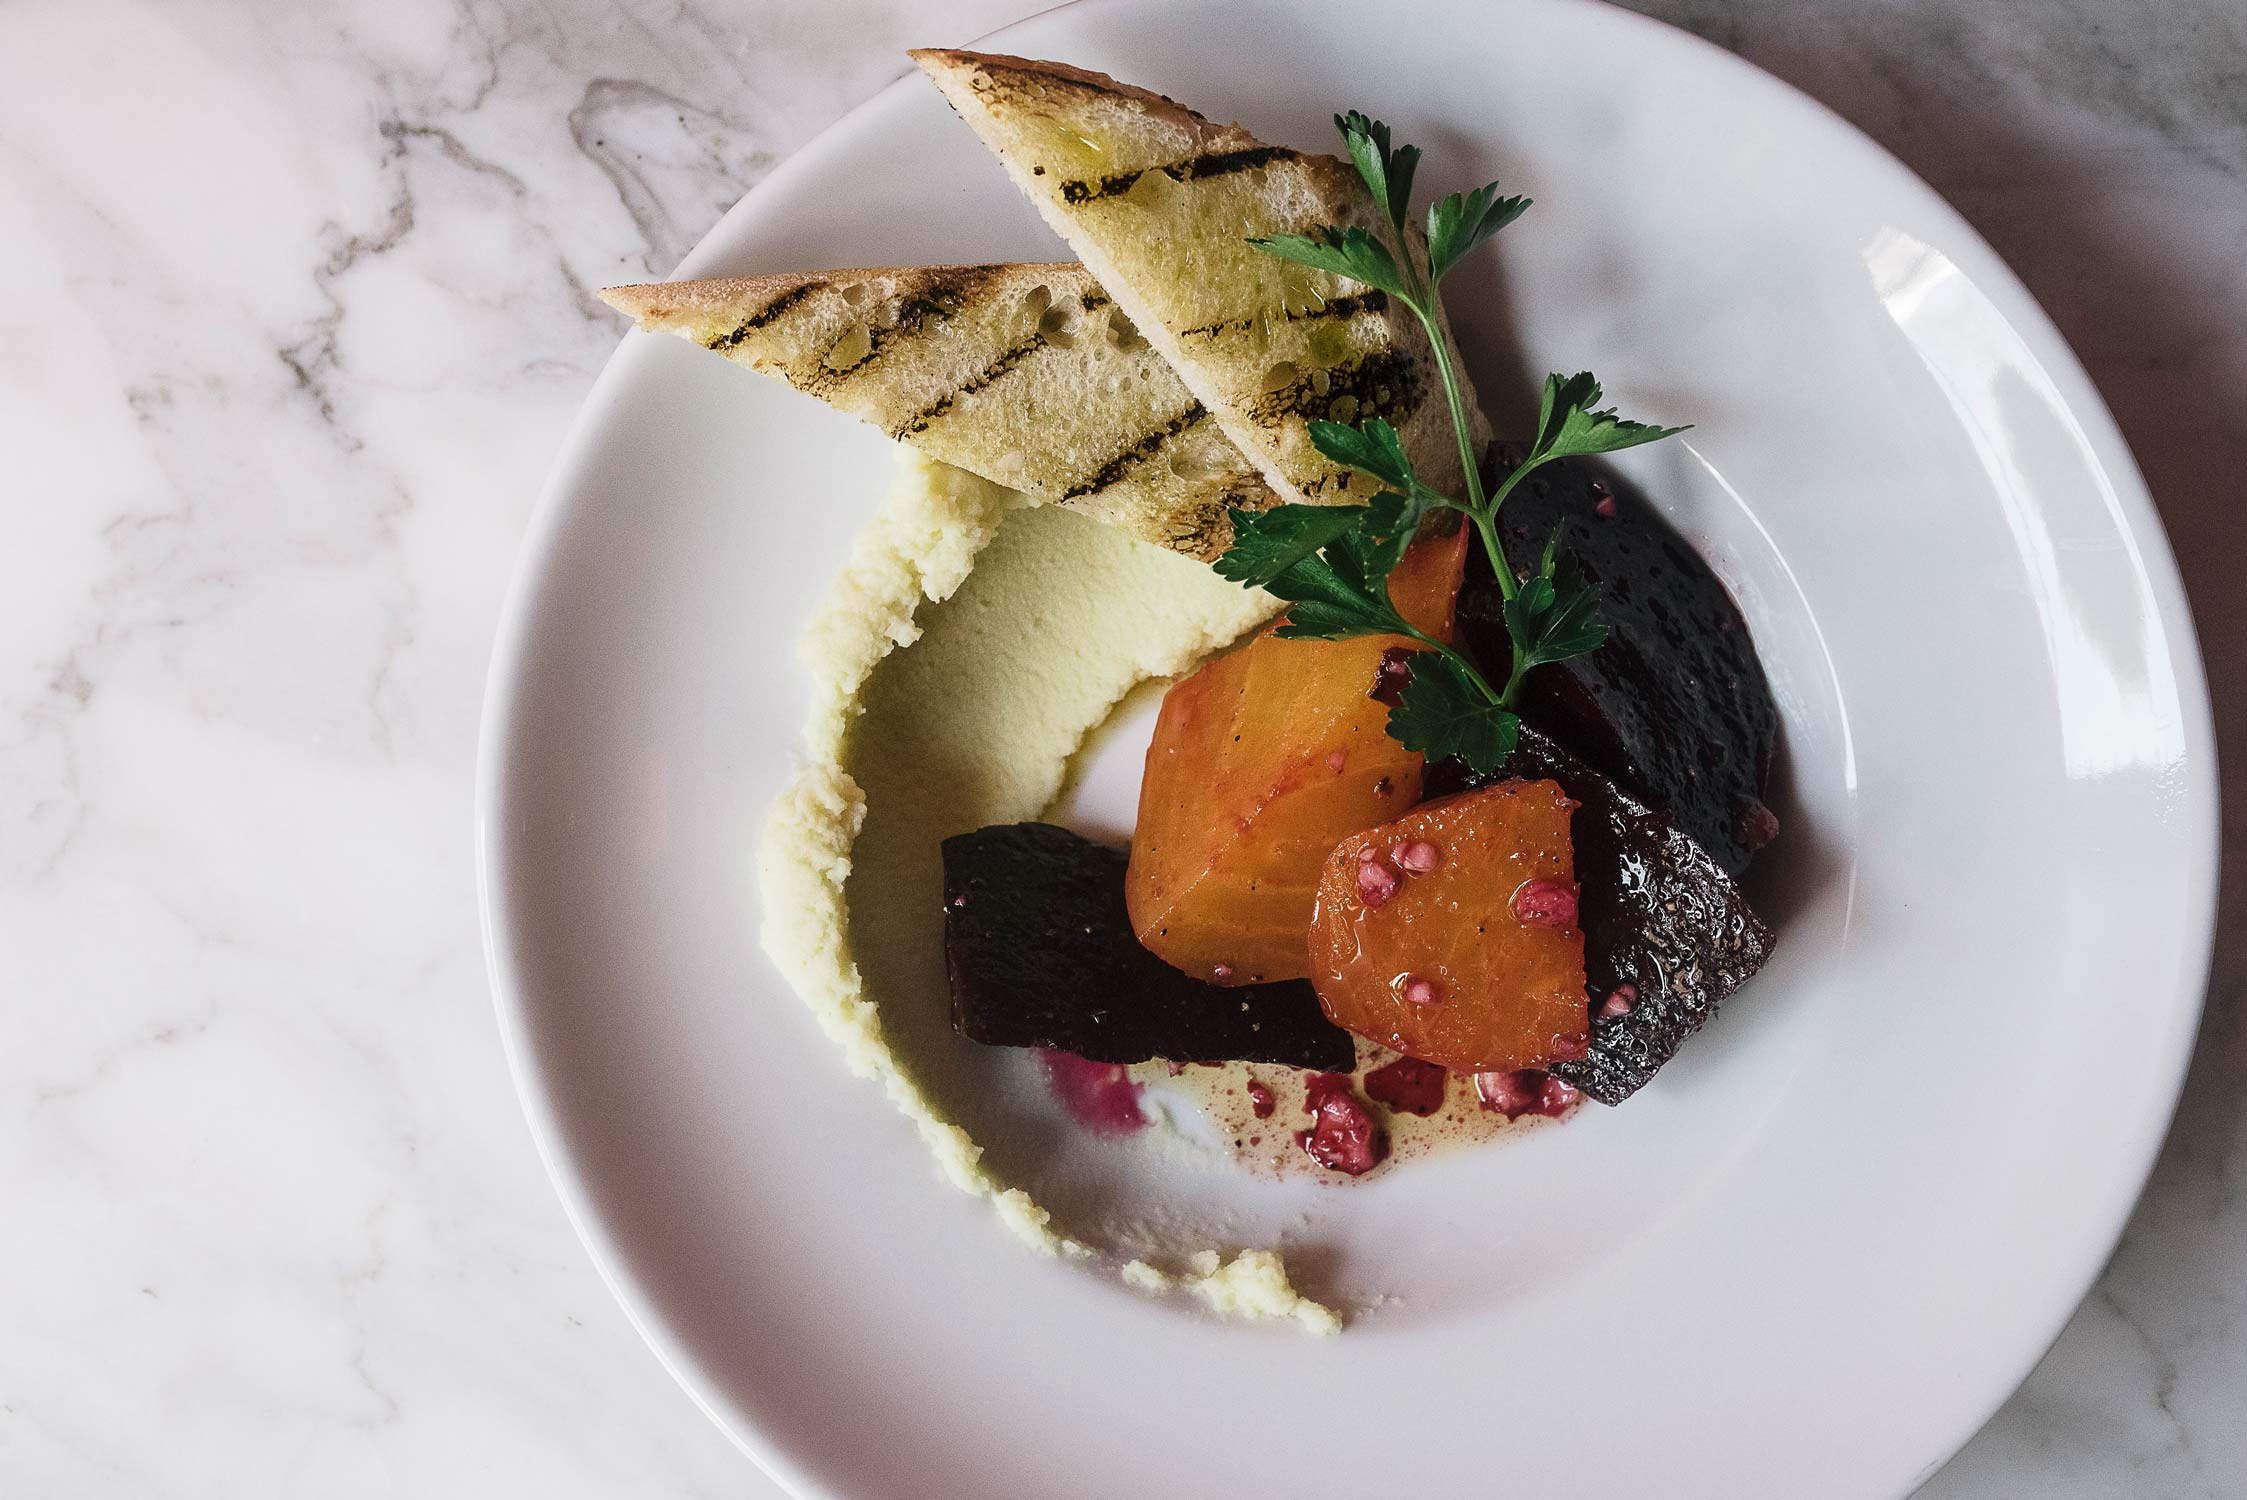 Roasted beets with Skorthalia, a rich and garlicky potato puree